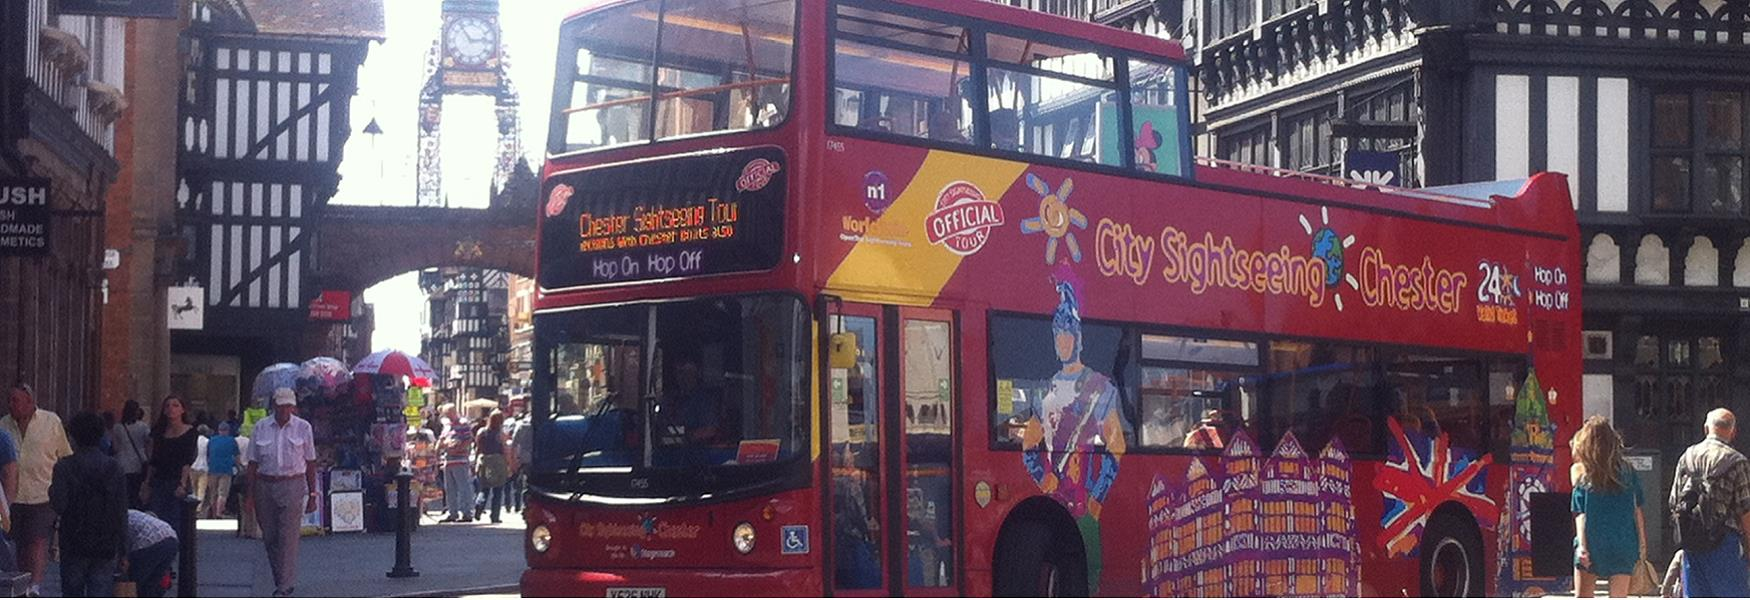 City Sightseeing Tours